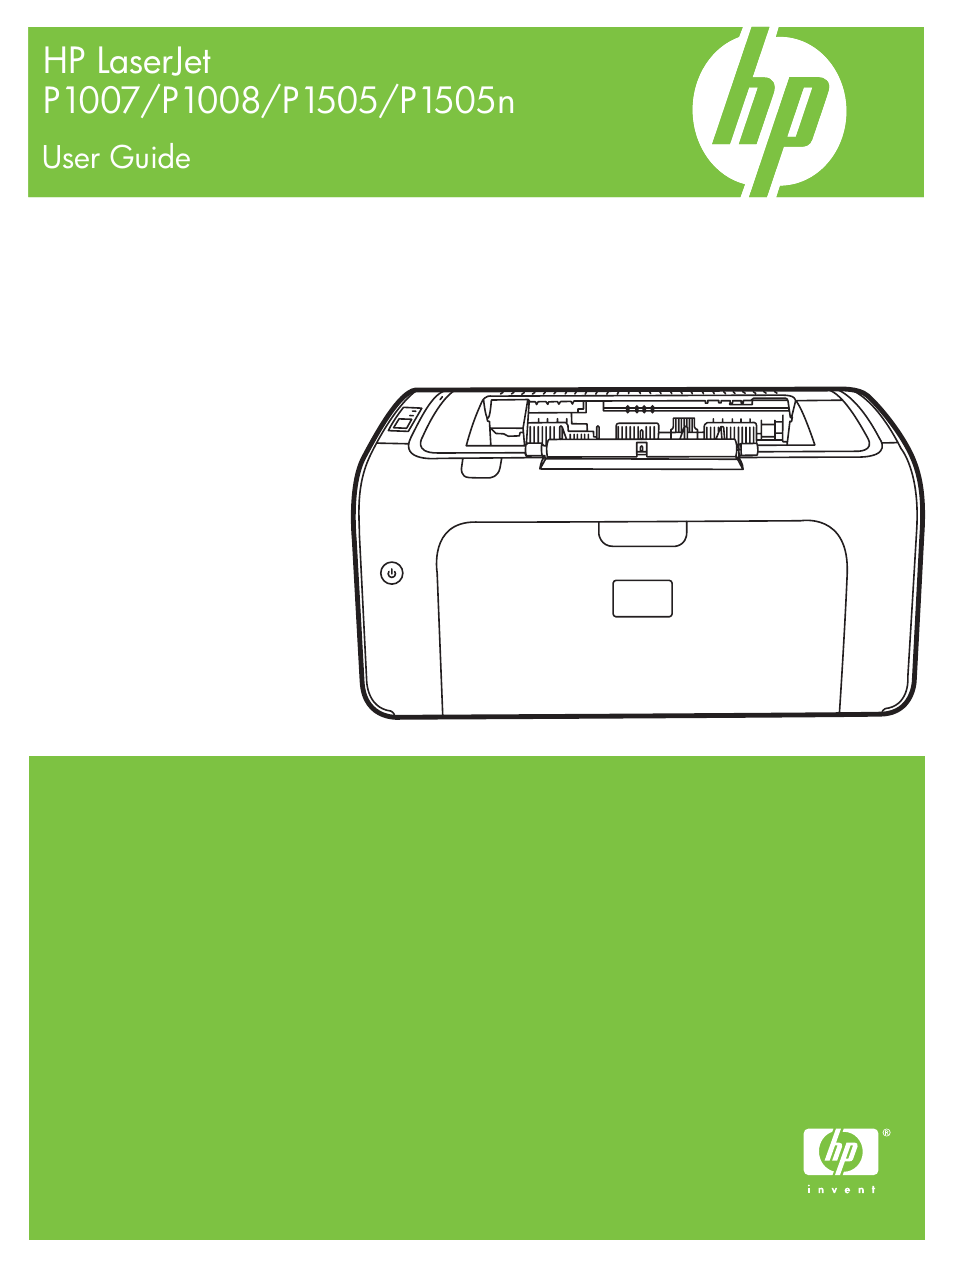 hp laserjet p1007 printer user manual 120 pages rh manualsdir com hp laserjet p1007 printer repair manual HP LaserJet P1007 Driver